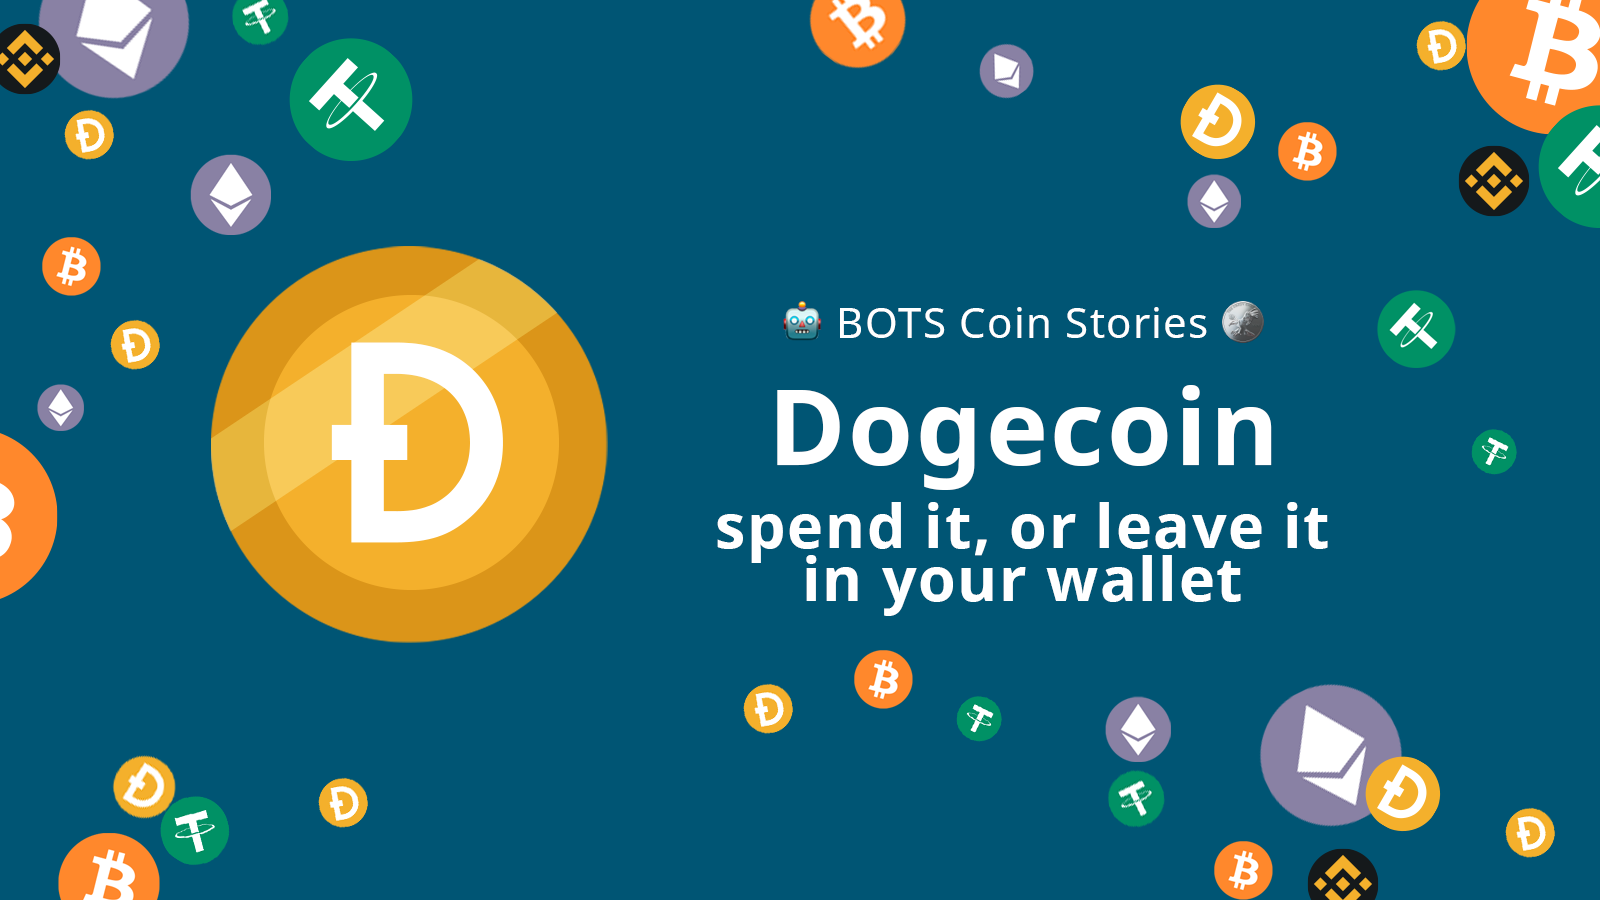 Dogecoin: spend it, or leave it in your wallet!